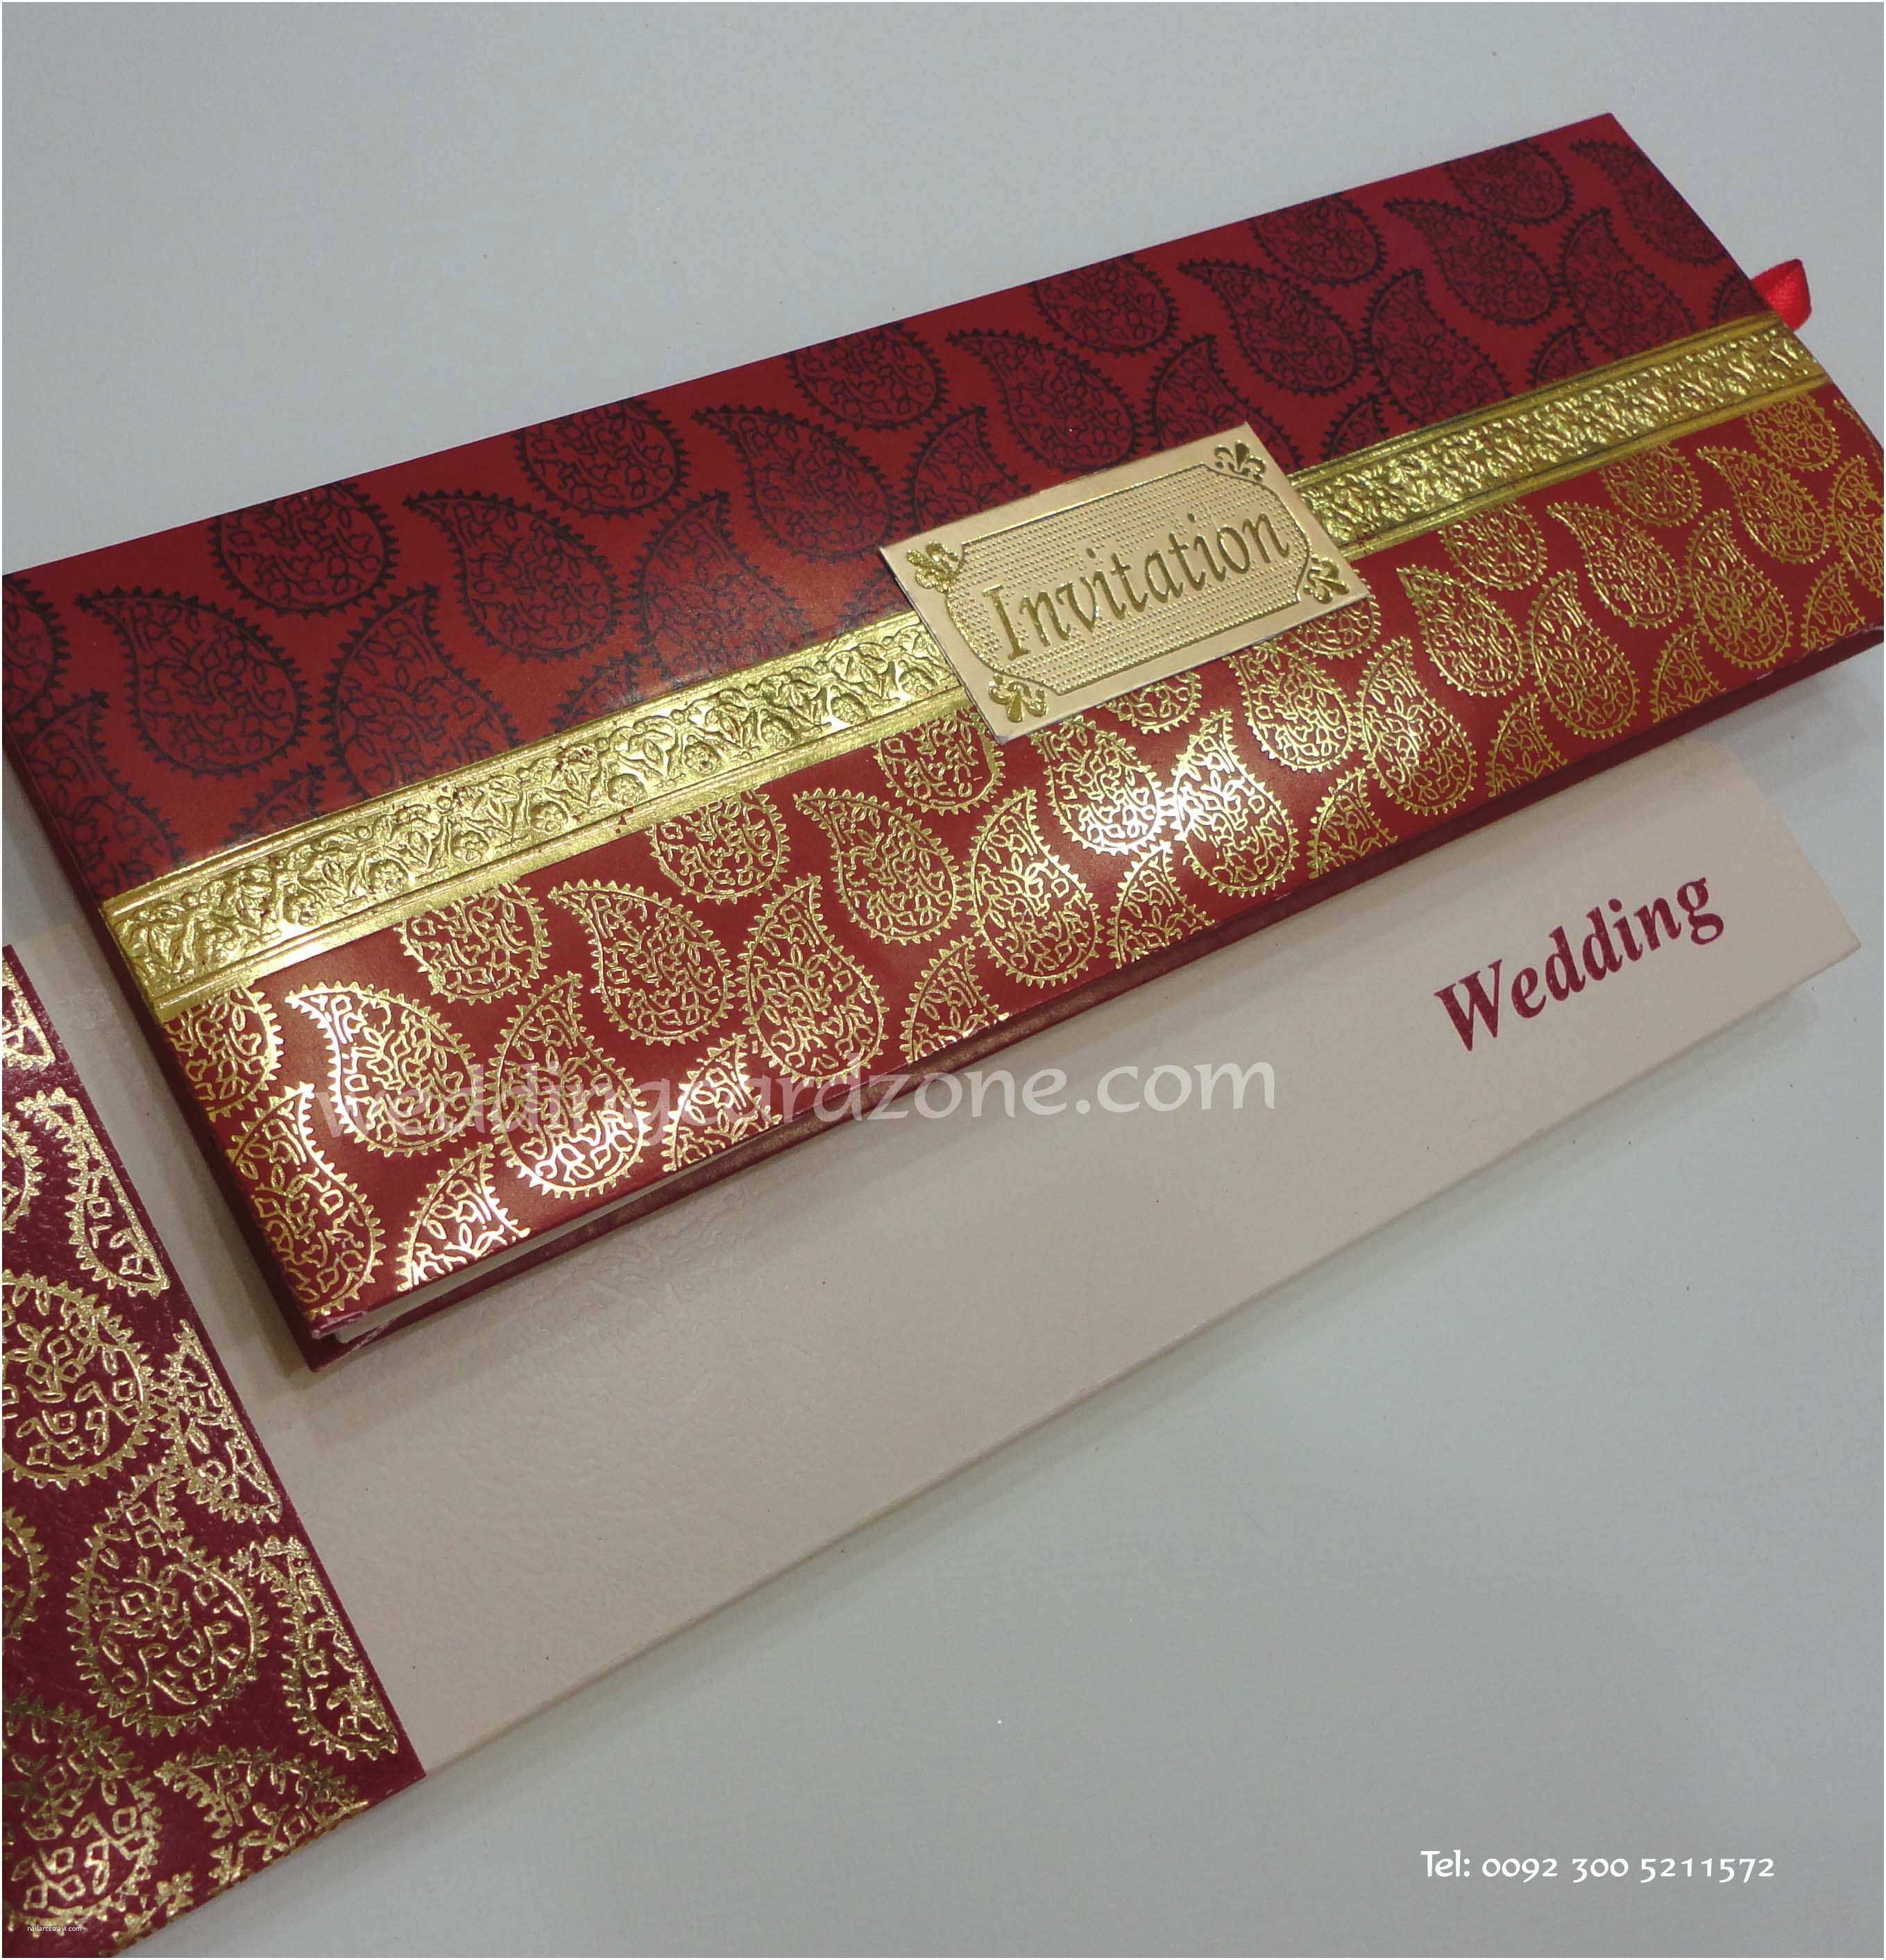 Pakistani Wedding Invitations Mind Blowing Pakistani Wedding Invitations